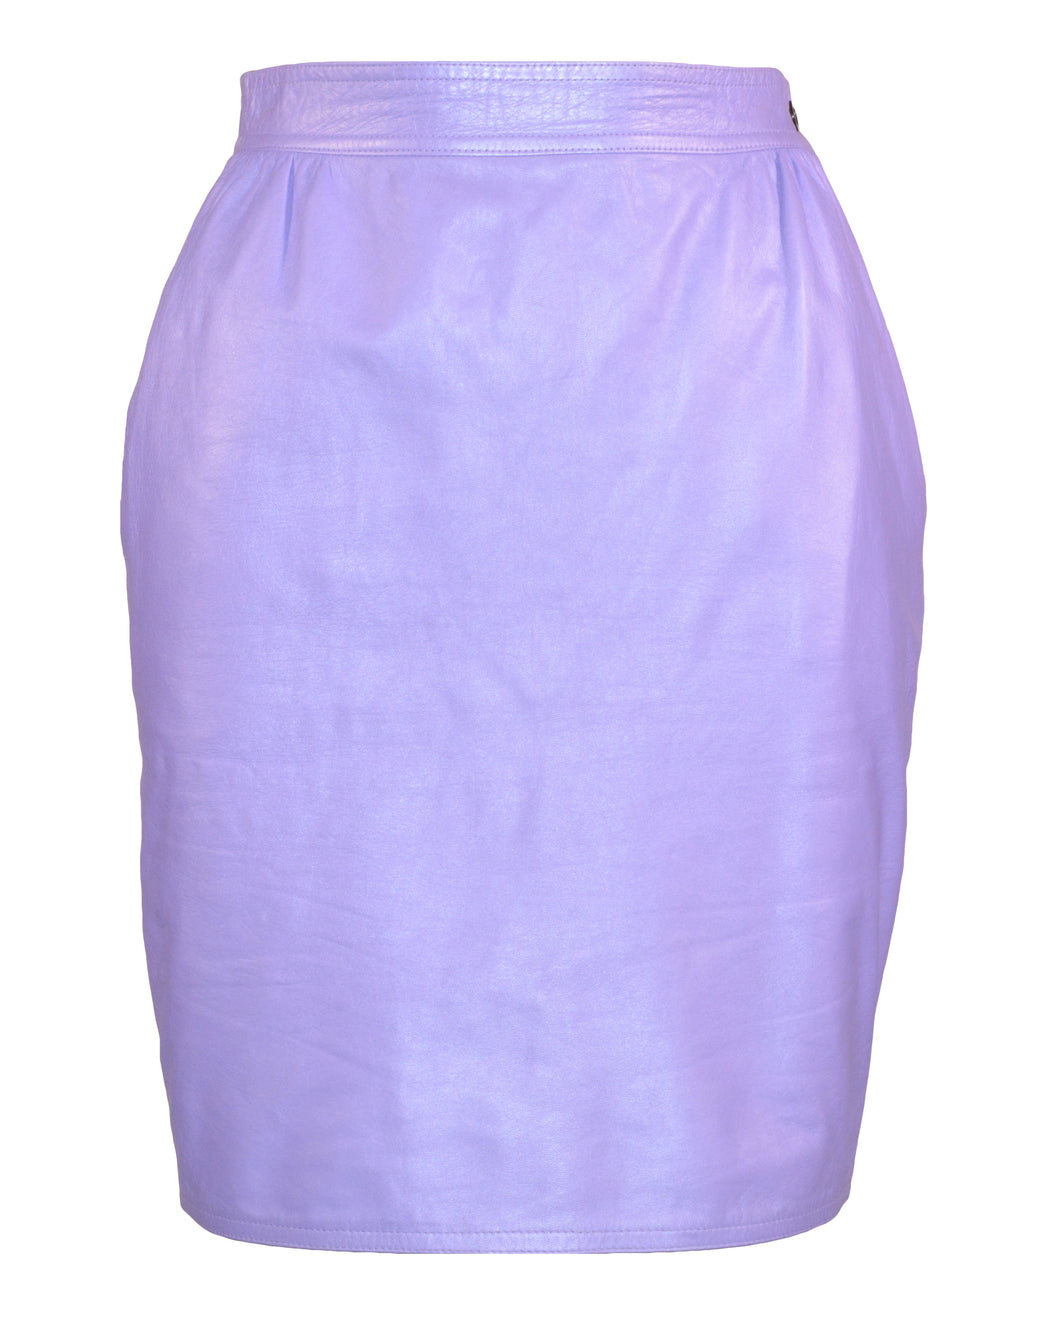 LEATHER PENCIL SKIRT - WOMEN'S SIZE XS